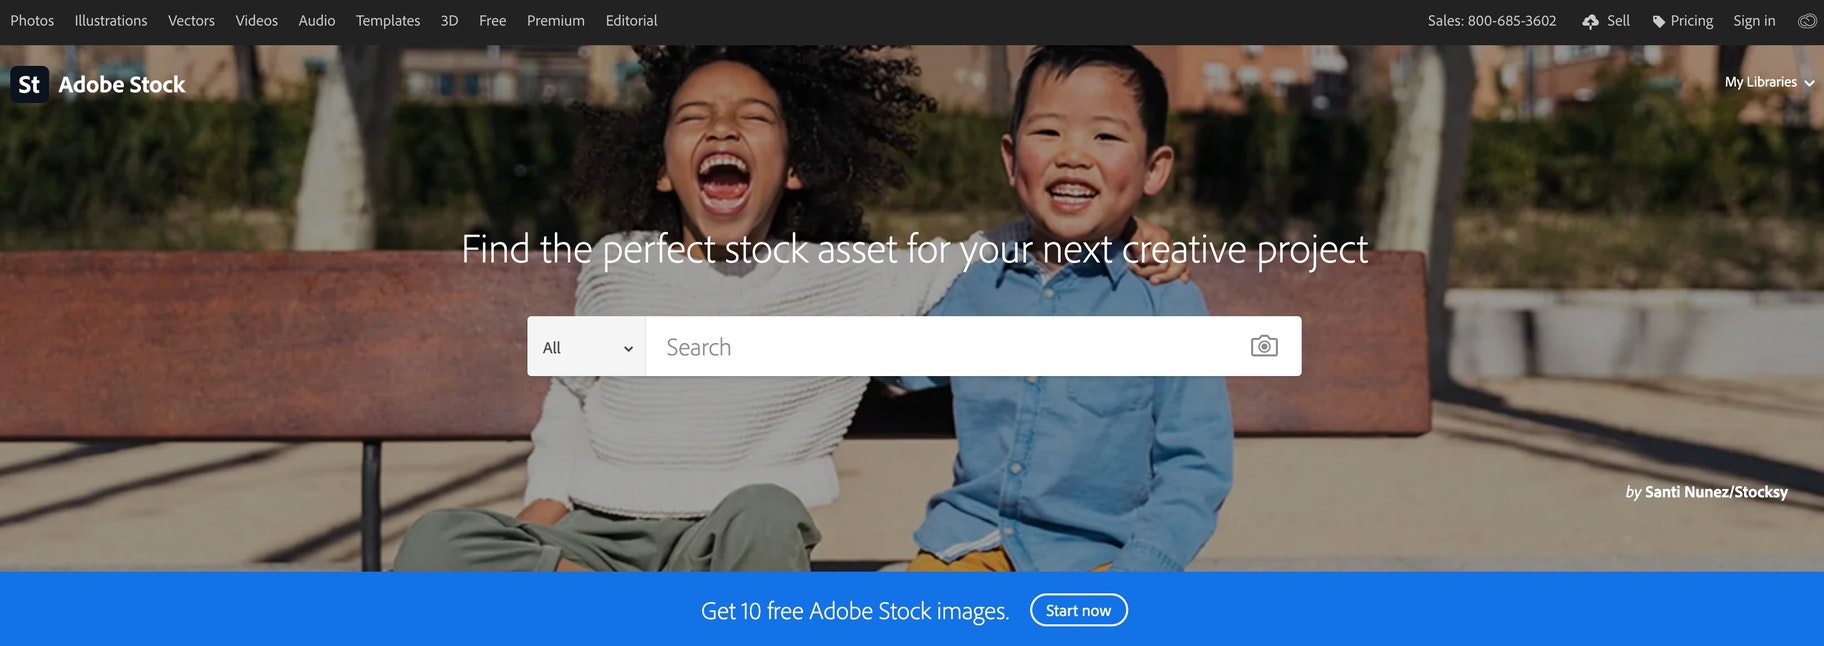 sell images adobe stock